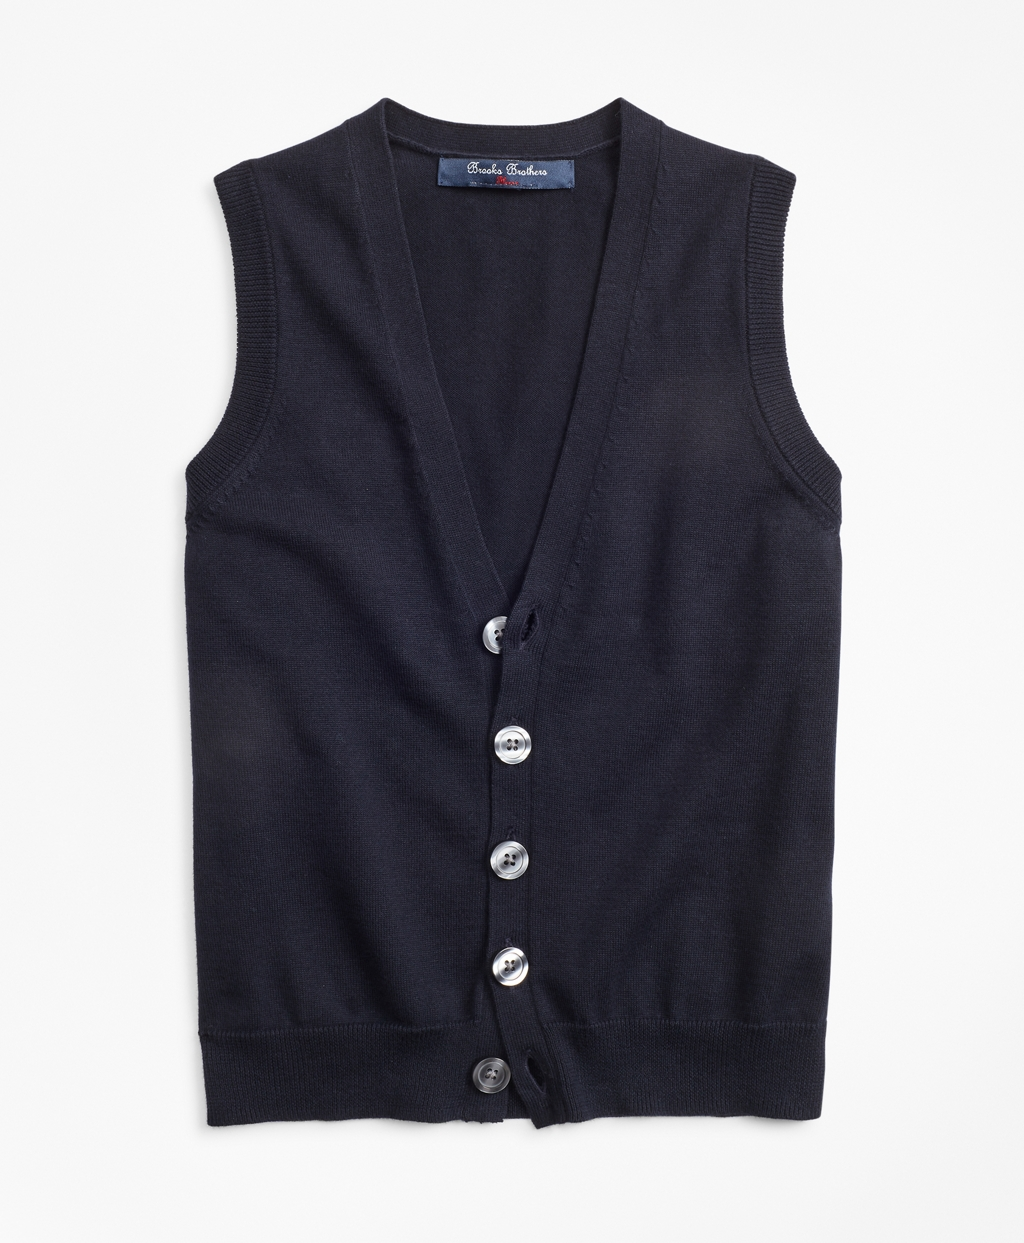 New Vintage Boys Clothing and Costumes Brooks Brothers Boys Boys Cotton Button Front Sweater Vest $19.75 AT vintagedancer.com